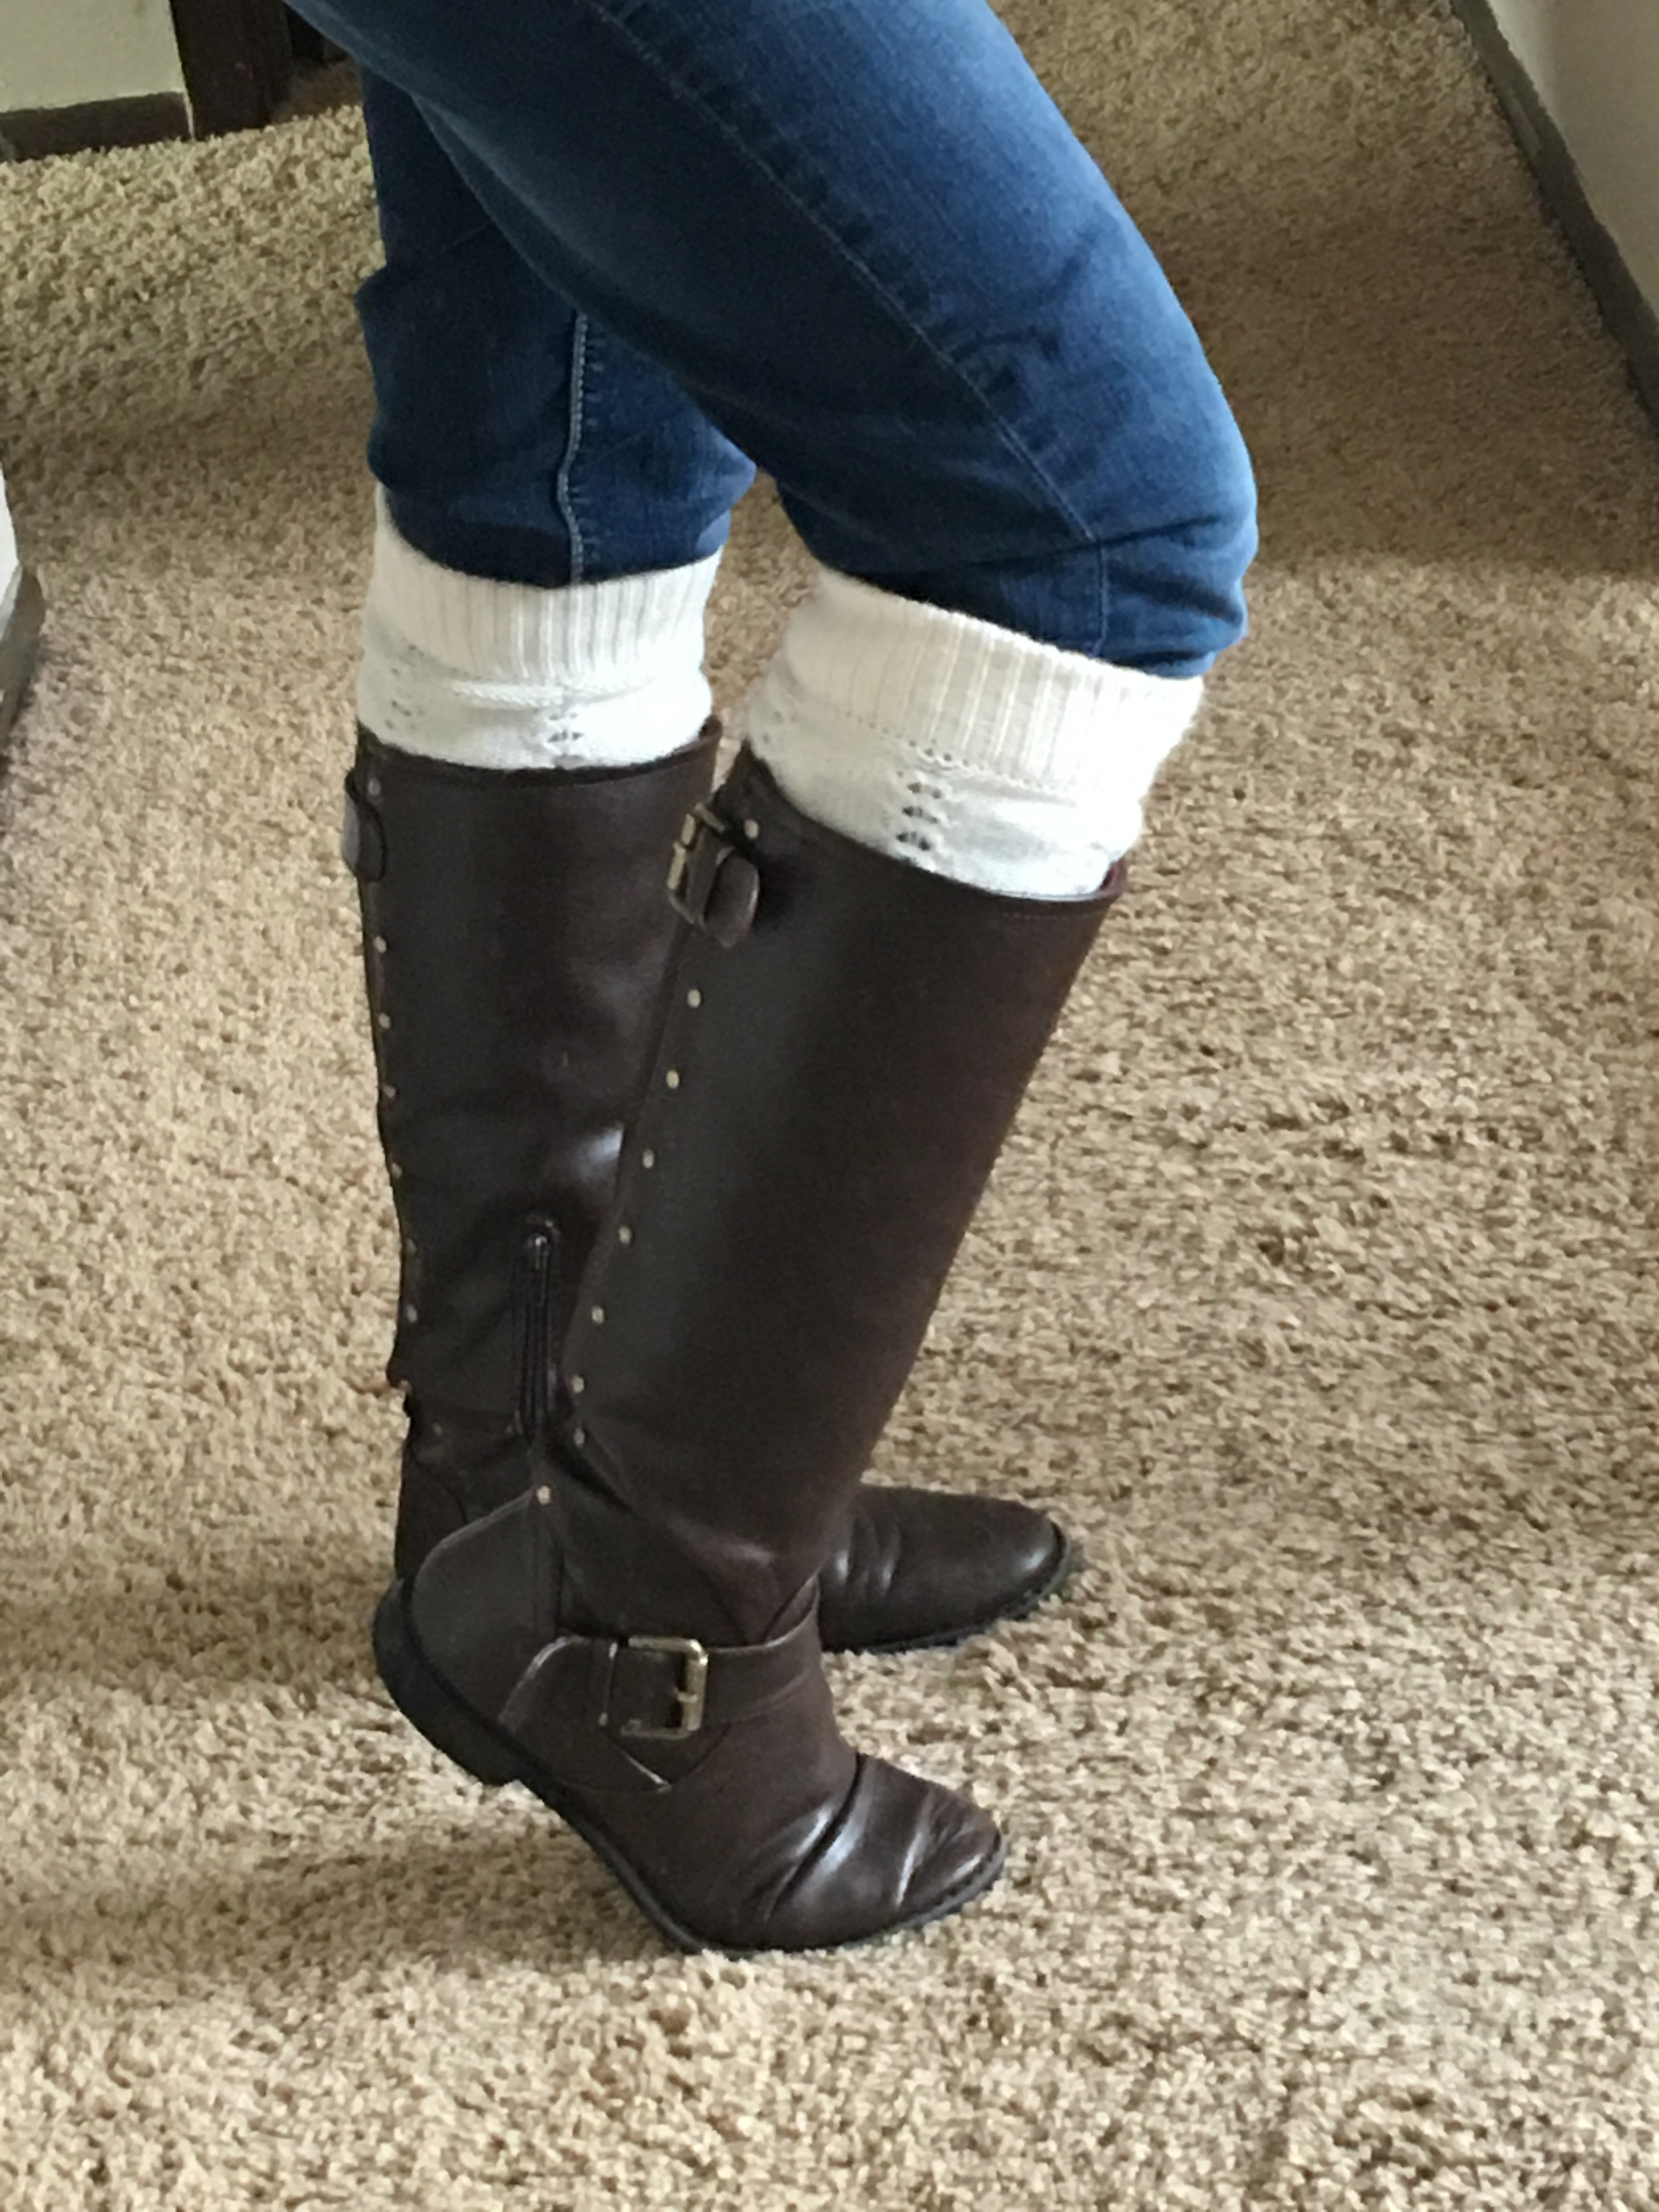 Boots from DSW,Leg warmers, and Blue jeans from Maurices